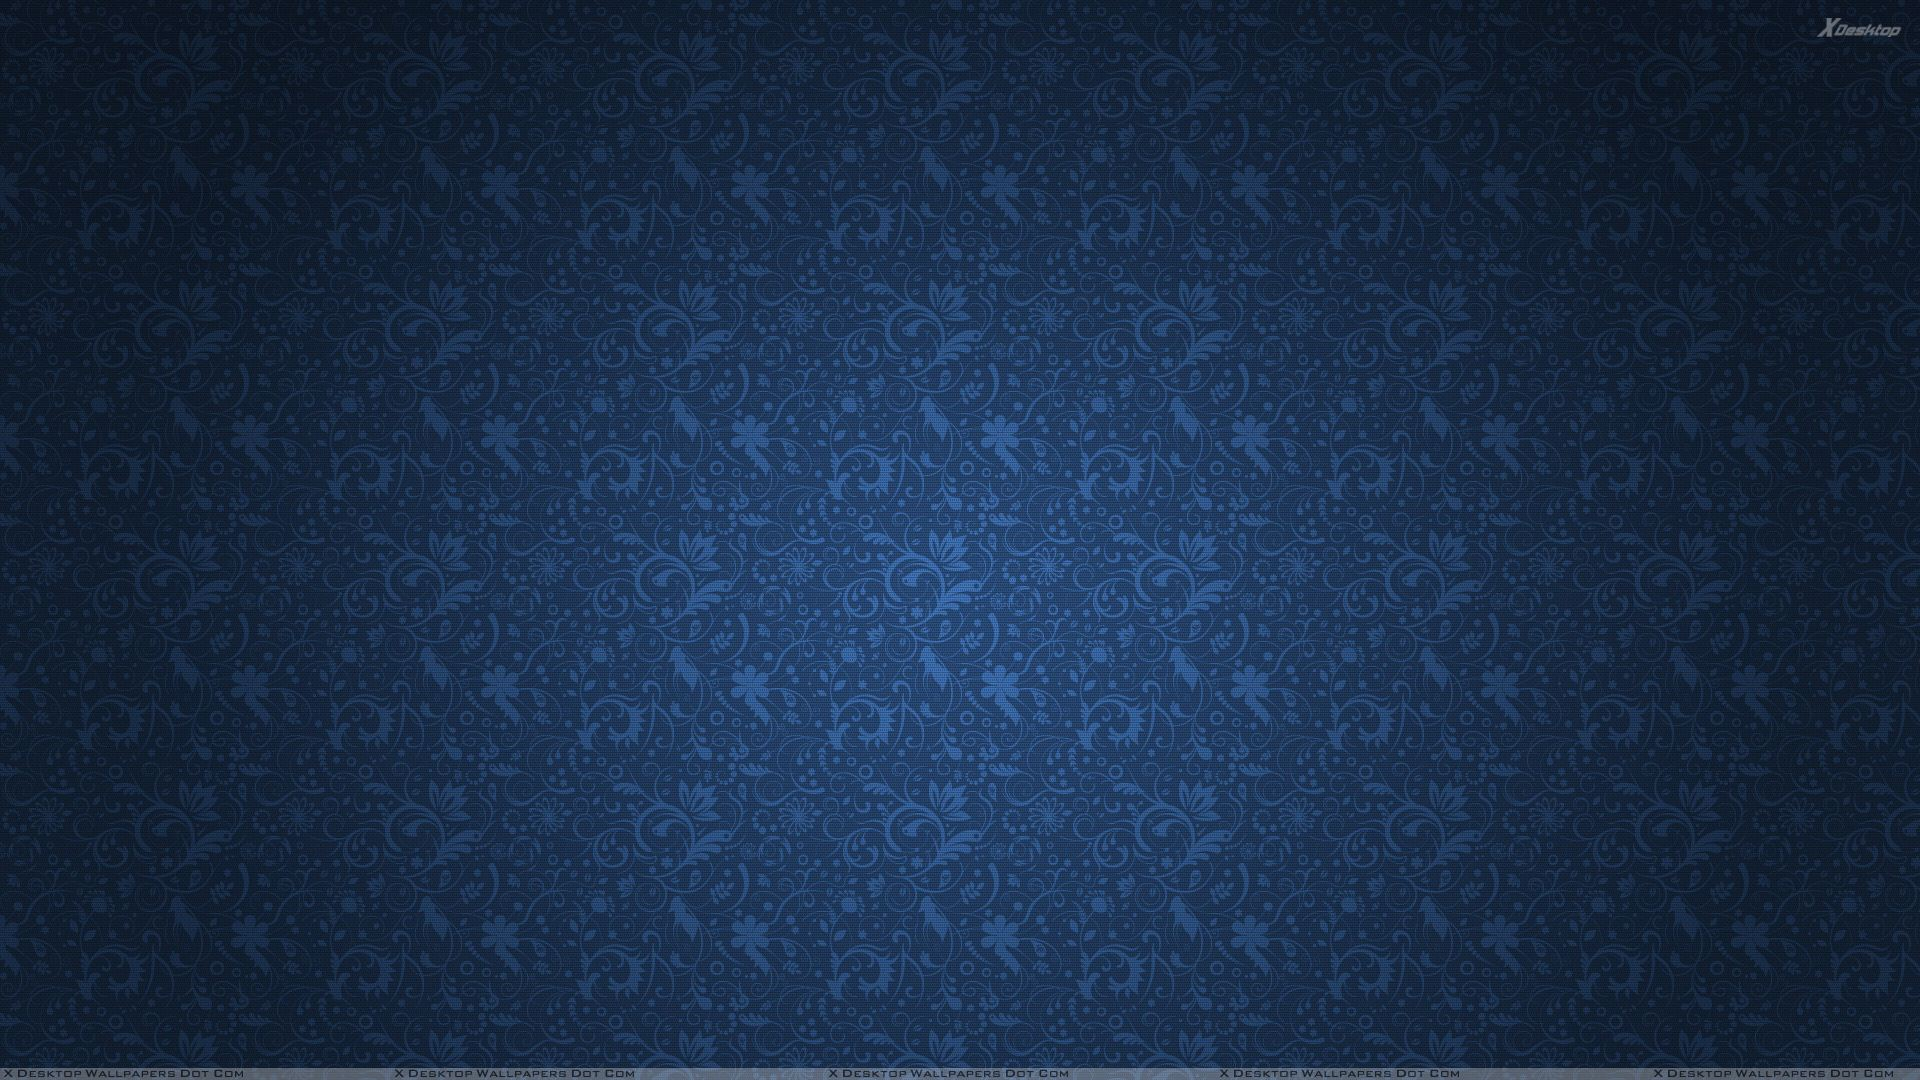 blue abstract background with flowers on it wallpaper